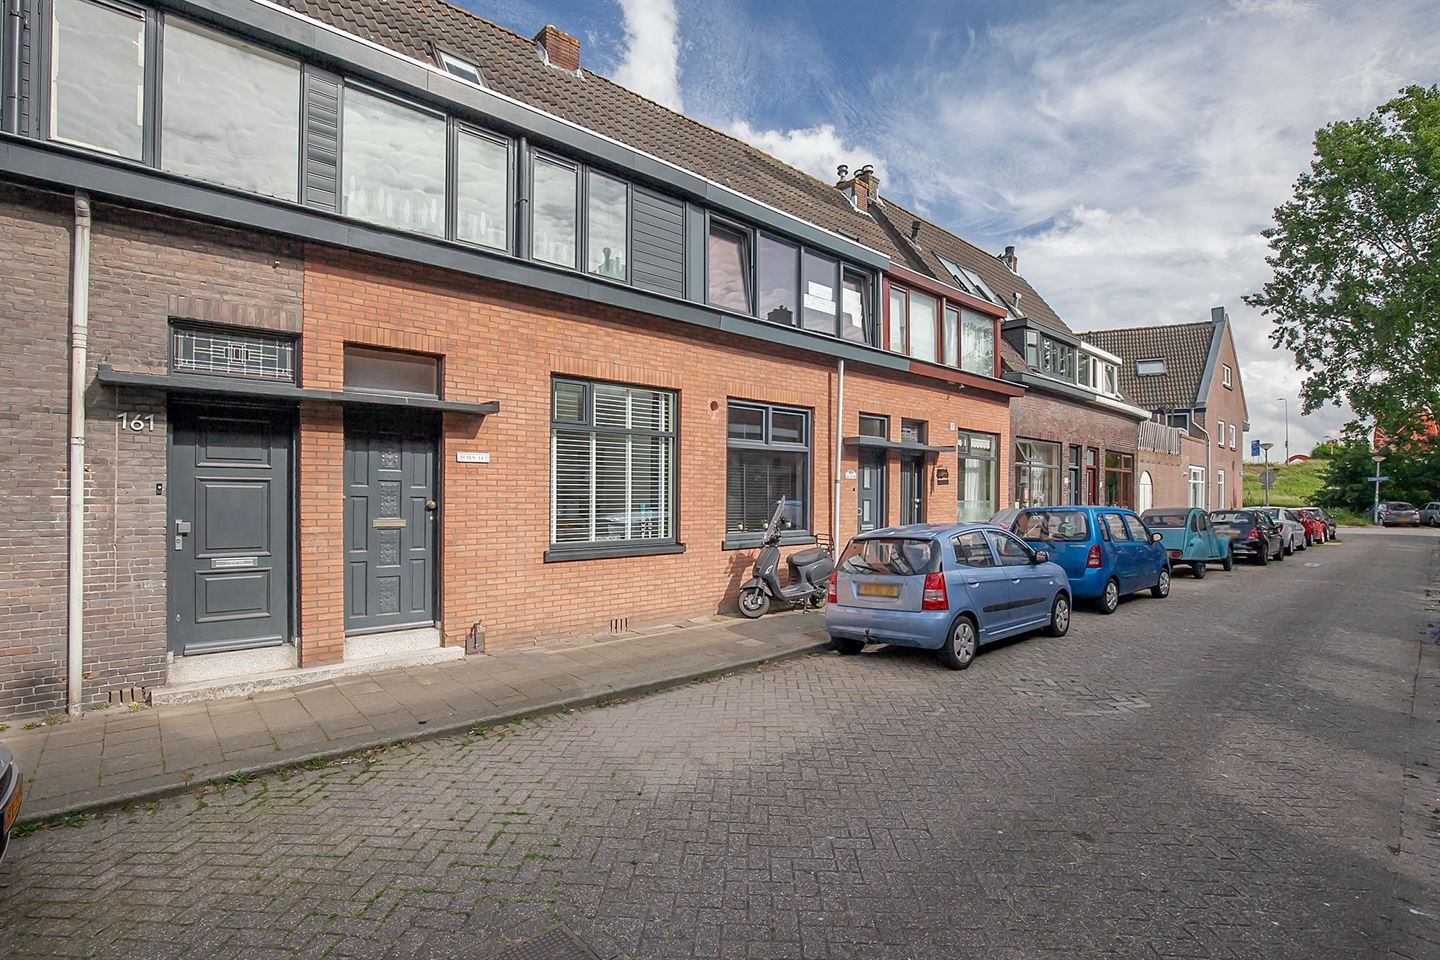 View photo 1 of Buffelstraat 163